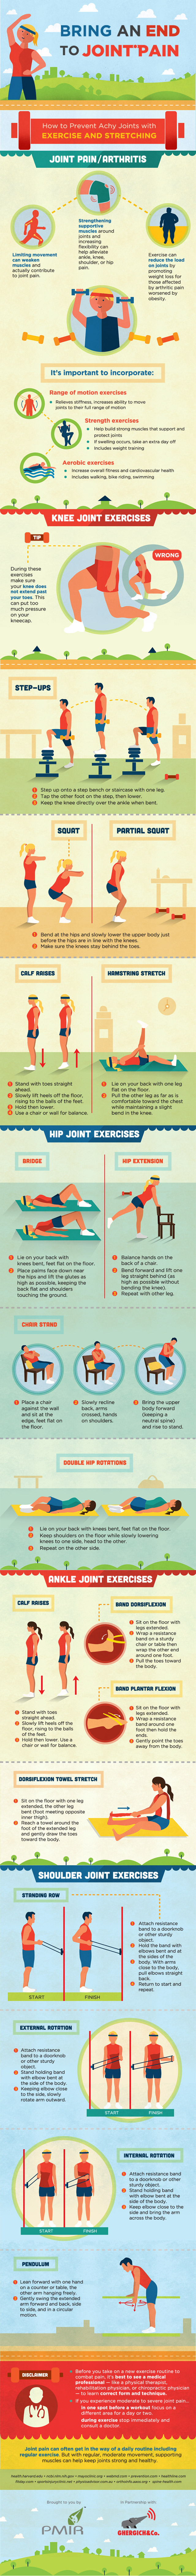 Bring An End To Joint Pain - Through Exercise and Stretching